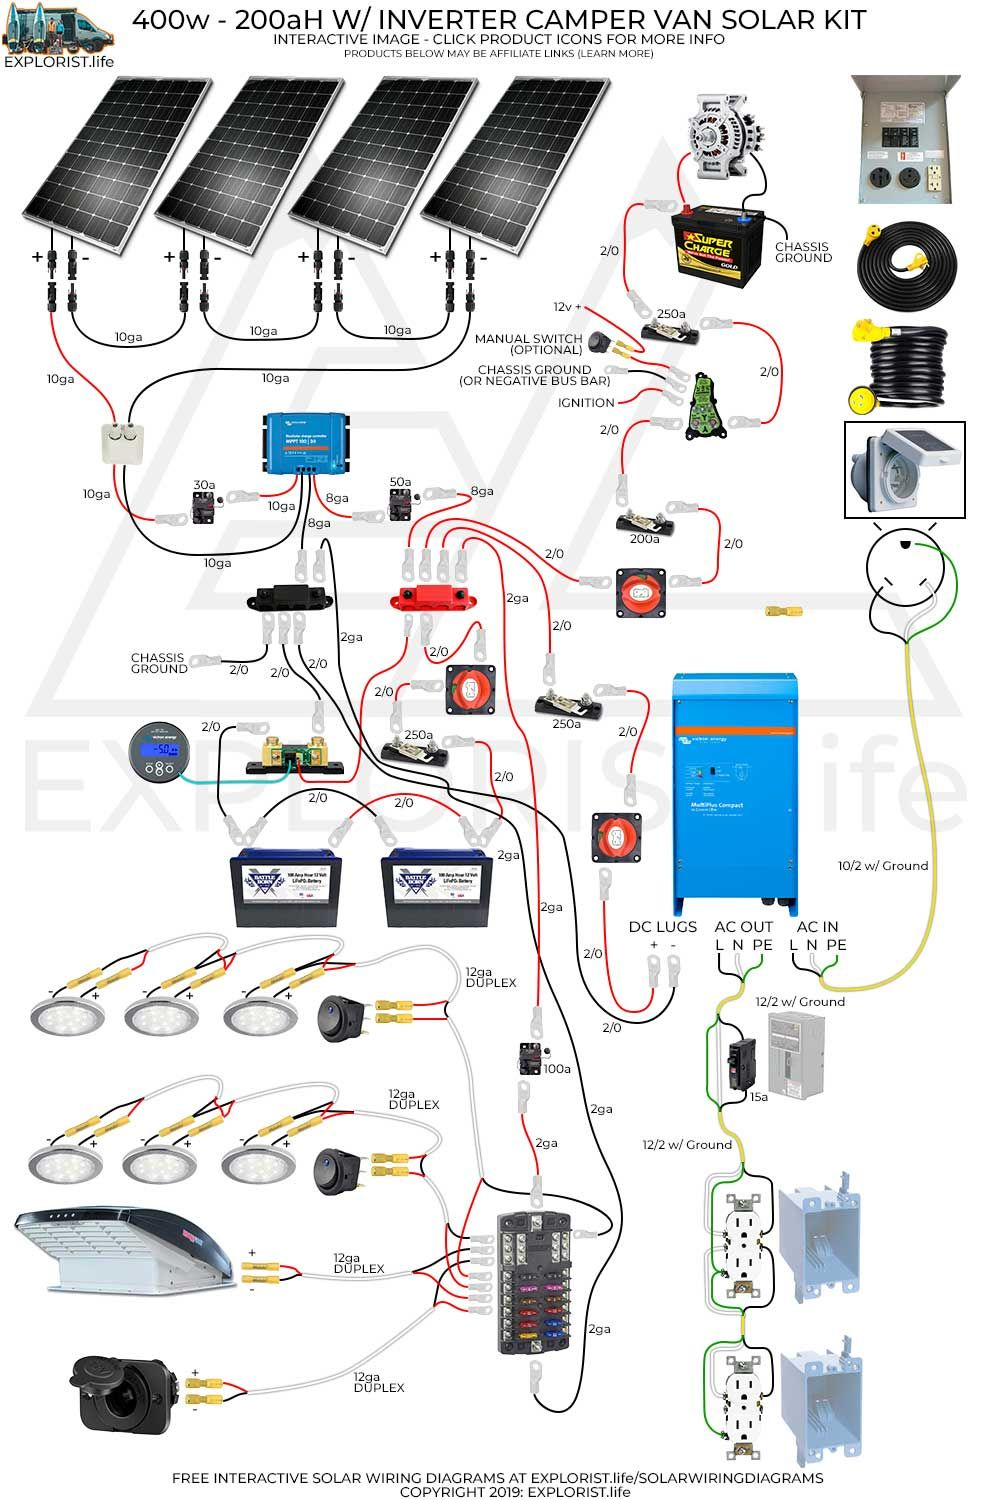 interactive diy solar wiring diagrams for campers van s rv s 1000 images about camping r v wiring outdoors on pinterest [ 1000 x 1500 Pixel ]